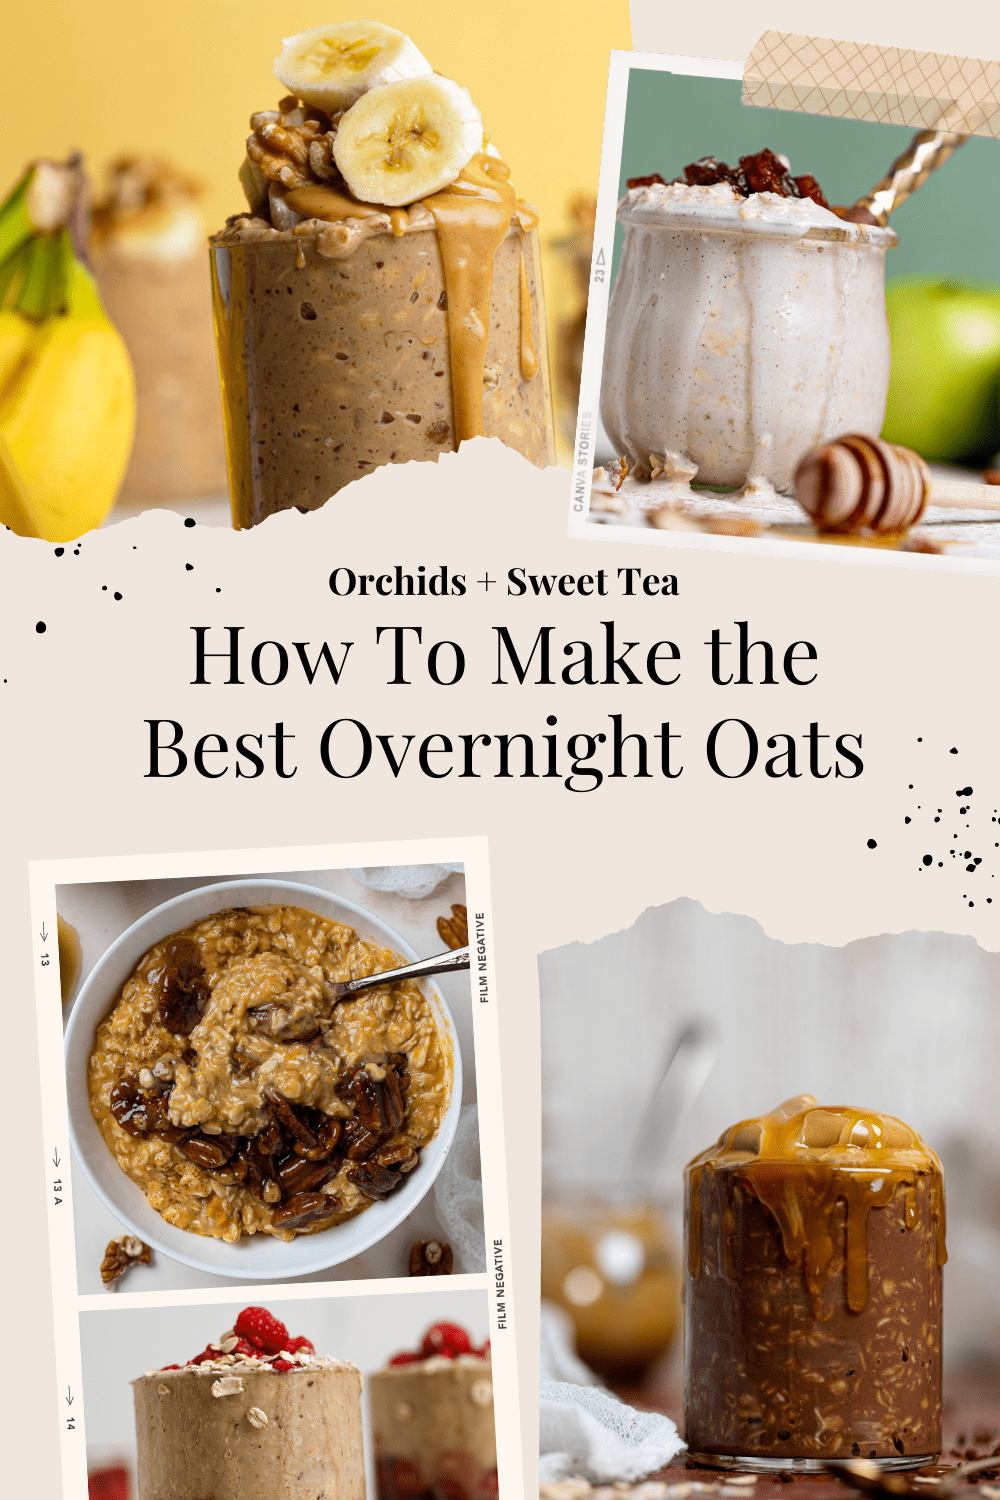 How To Make the Best Overnight Oats